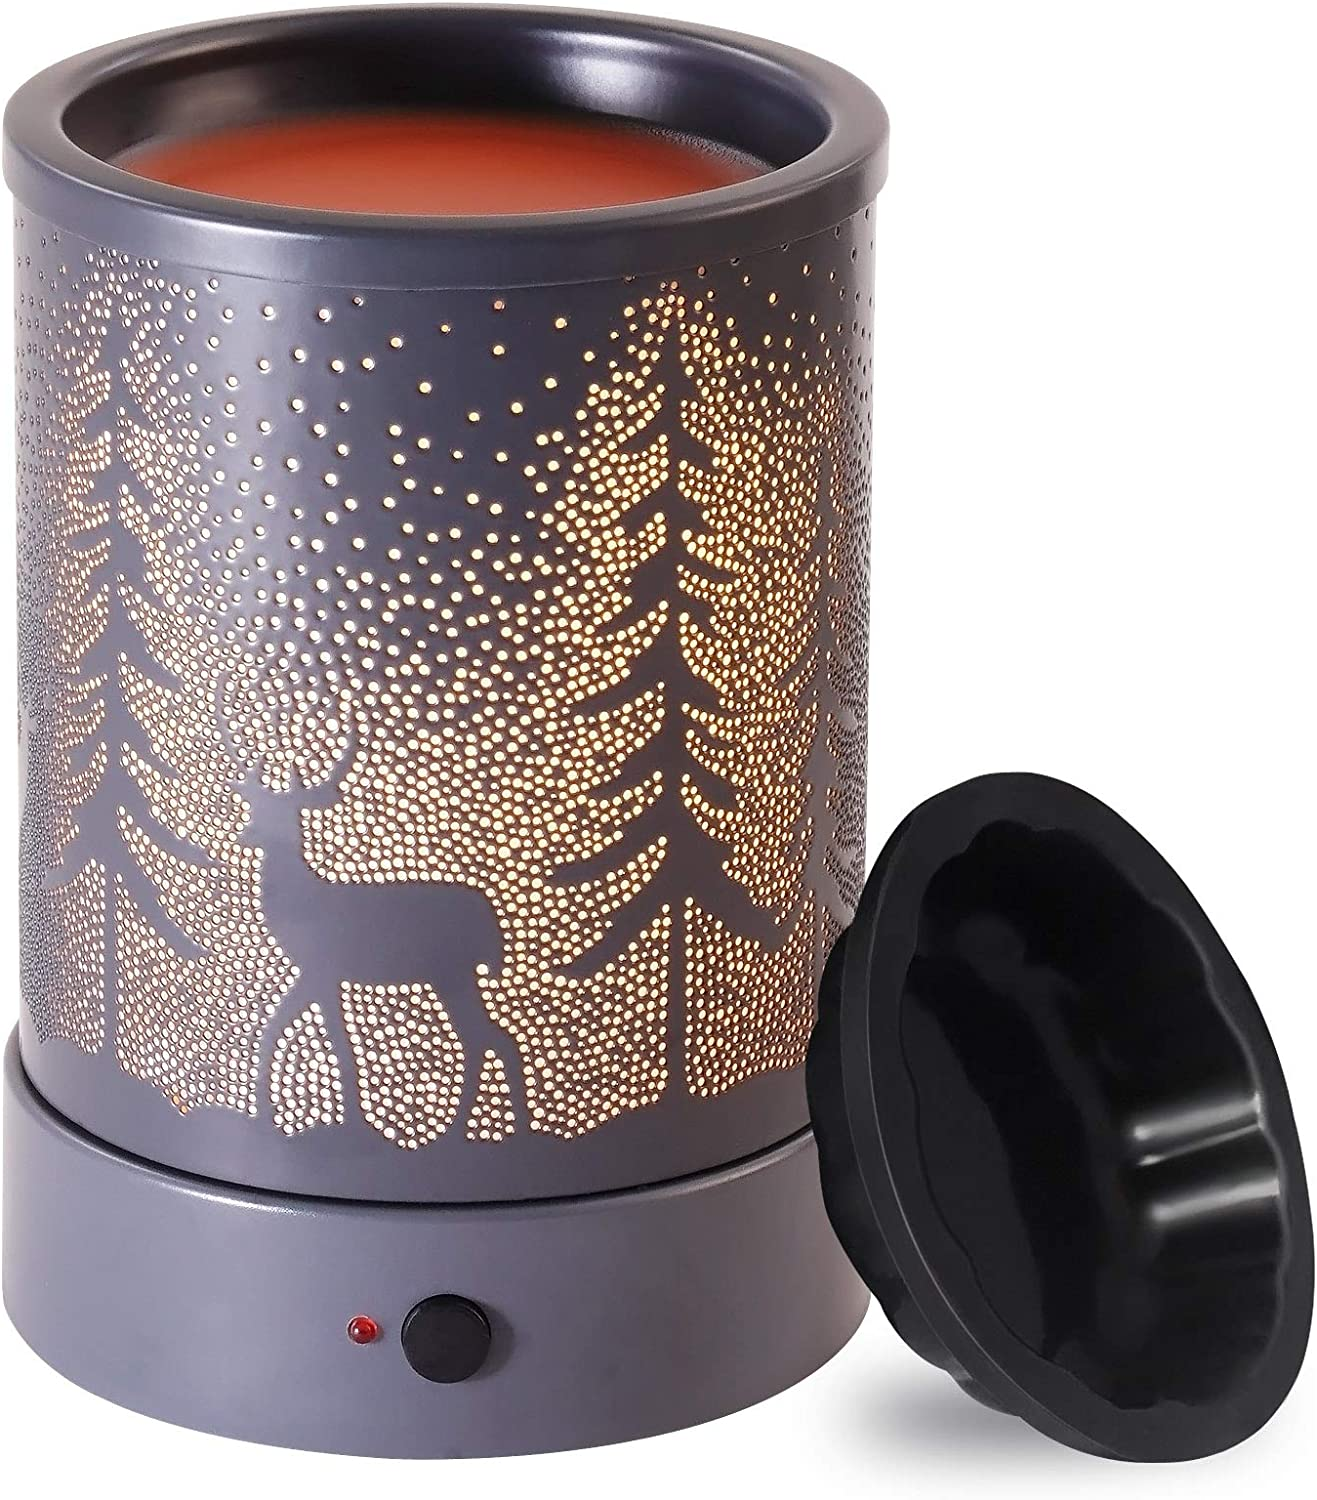 Wax-Melt Candle-Warmer Electric Scented-Melter Burner - with Time Wax Fragrance Essential Oil Heater for Spa Yoga Gym Office Home Decor (Gray)